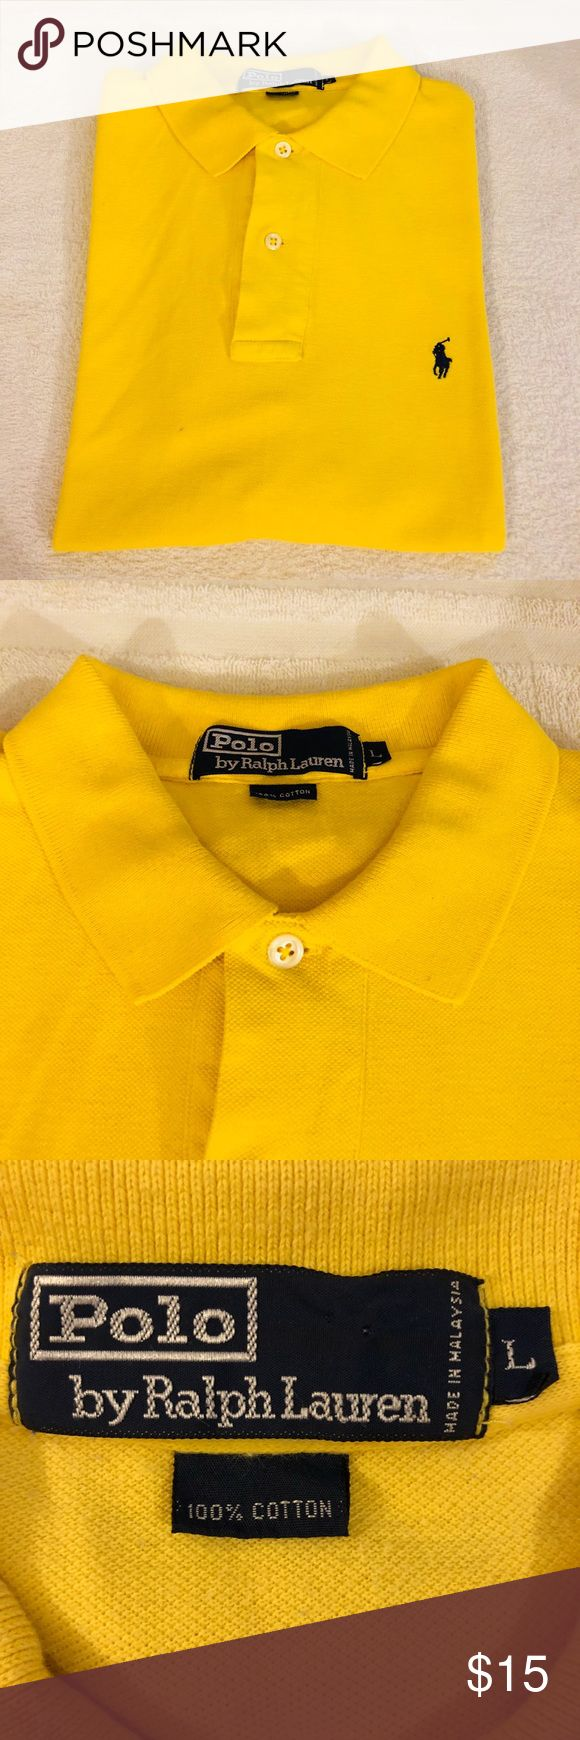 Polo Ralph Lauren Bright Yellow Polo Shirt L Polo Ralph Lauren Solid Bright Yellow With Navy Pony Logo Short Sleeve Polo Shirt size L! Great condition! Please make reasonable offers and bundle! Ask questions! Polo by Ralph Lauren Shirts Polos